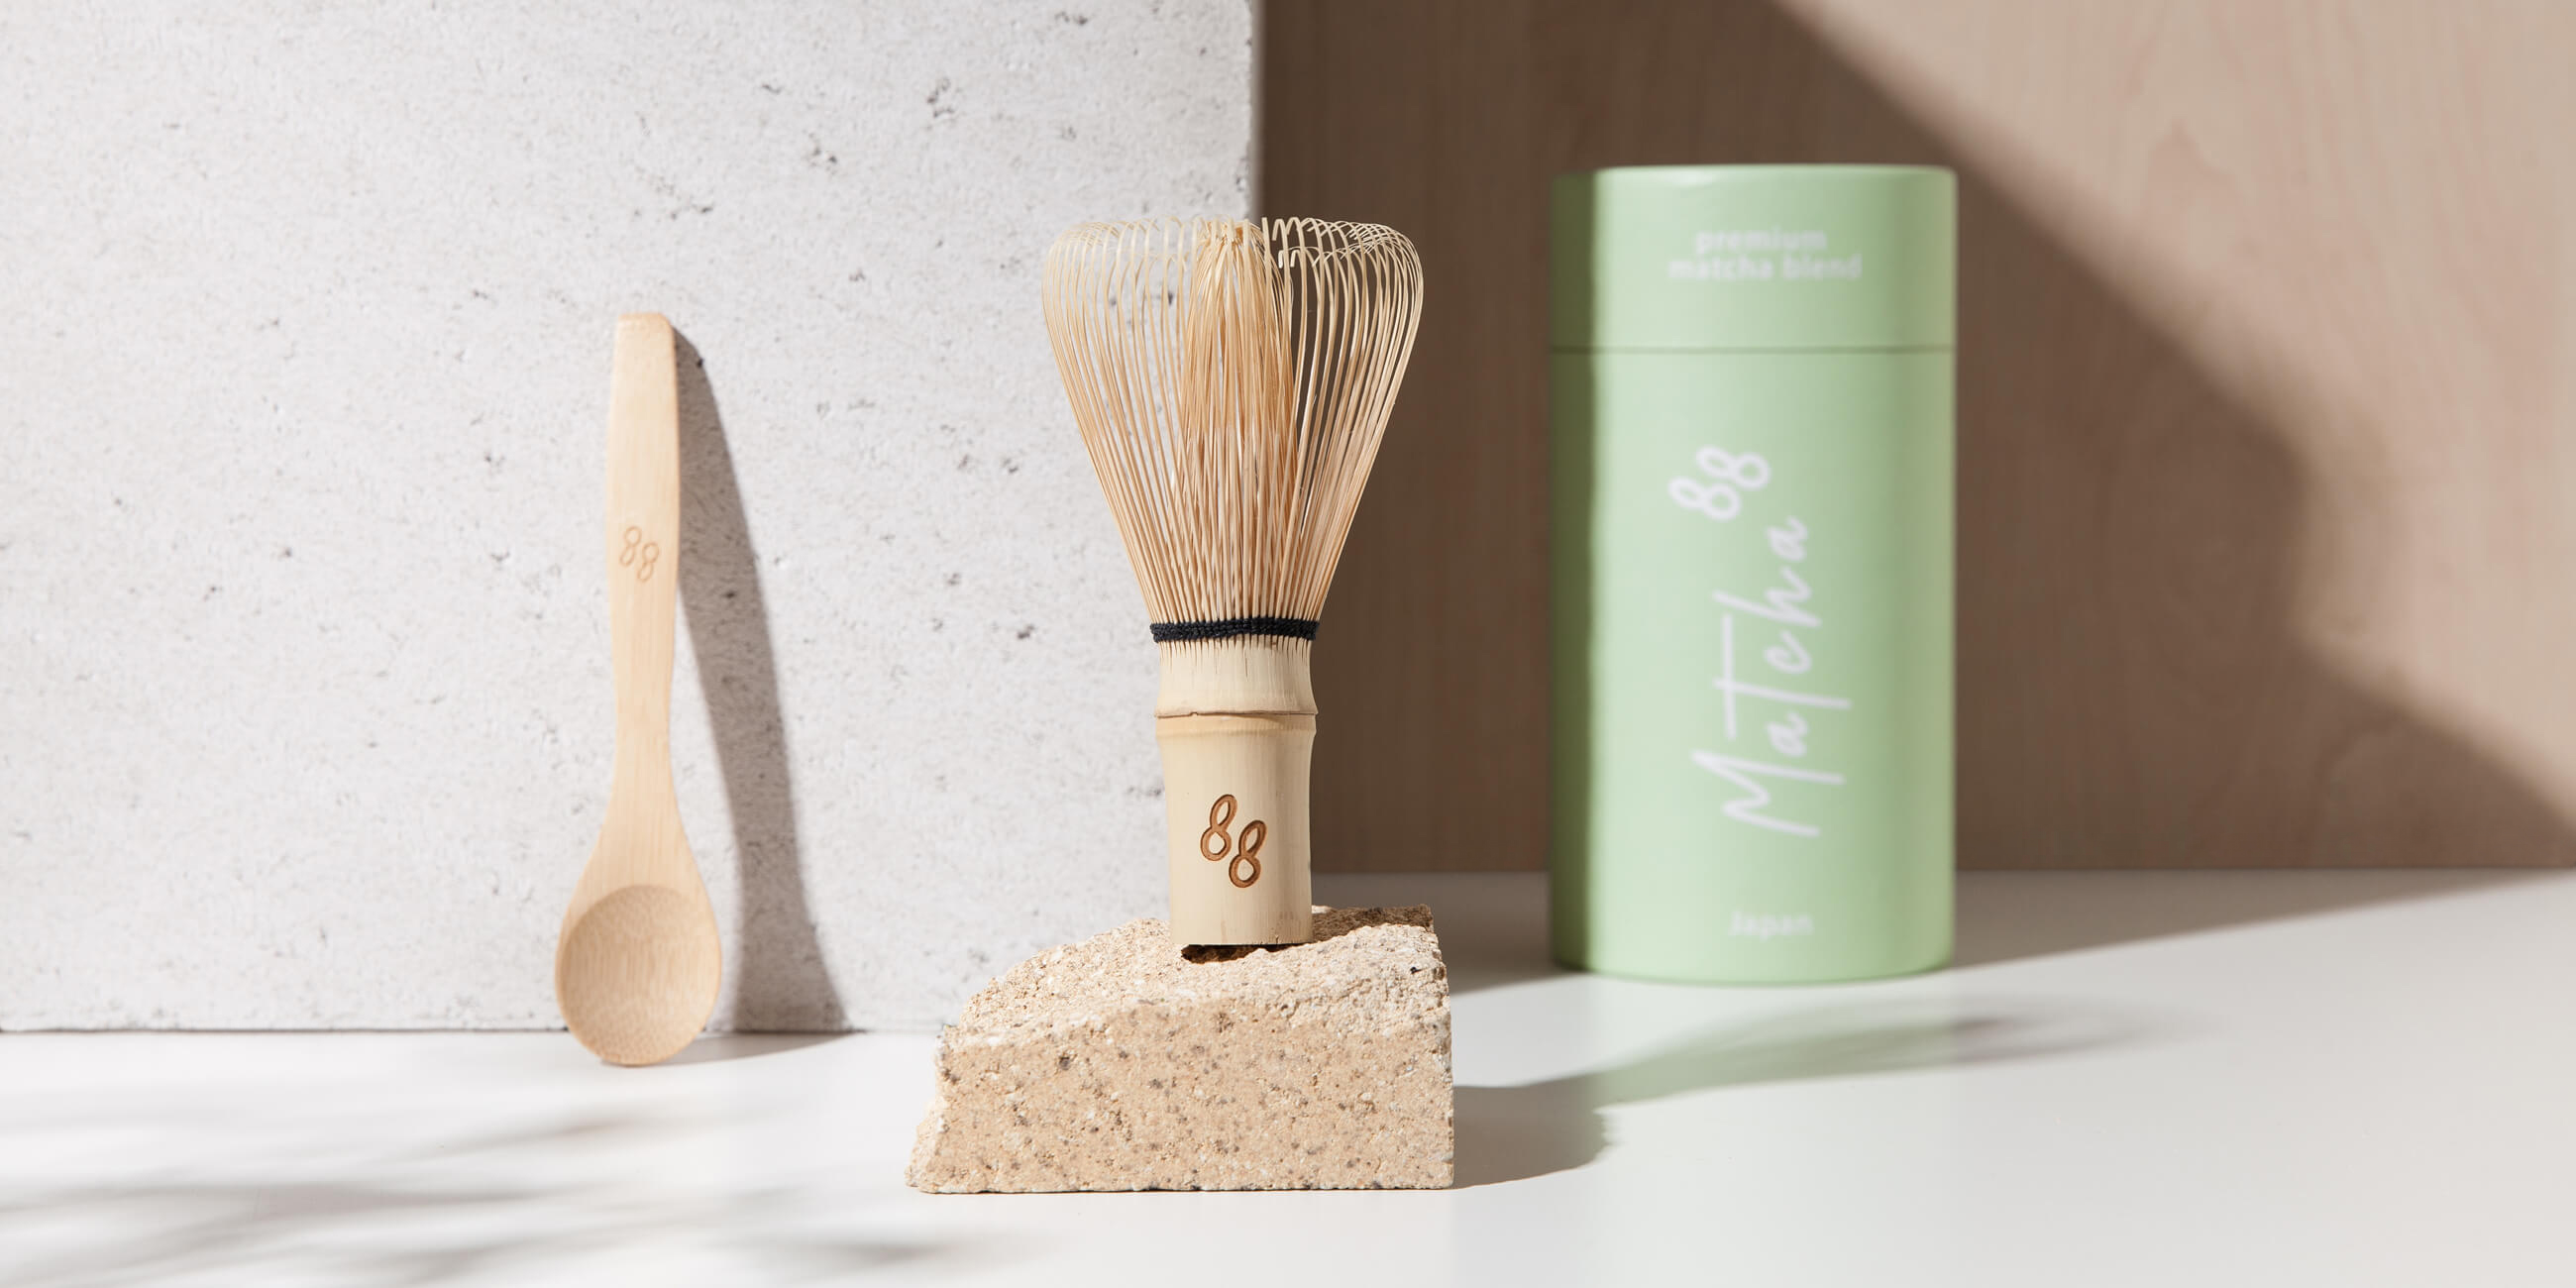 Matcha88 Branding and Packaging Design by Sergio Laskin Agency